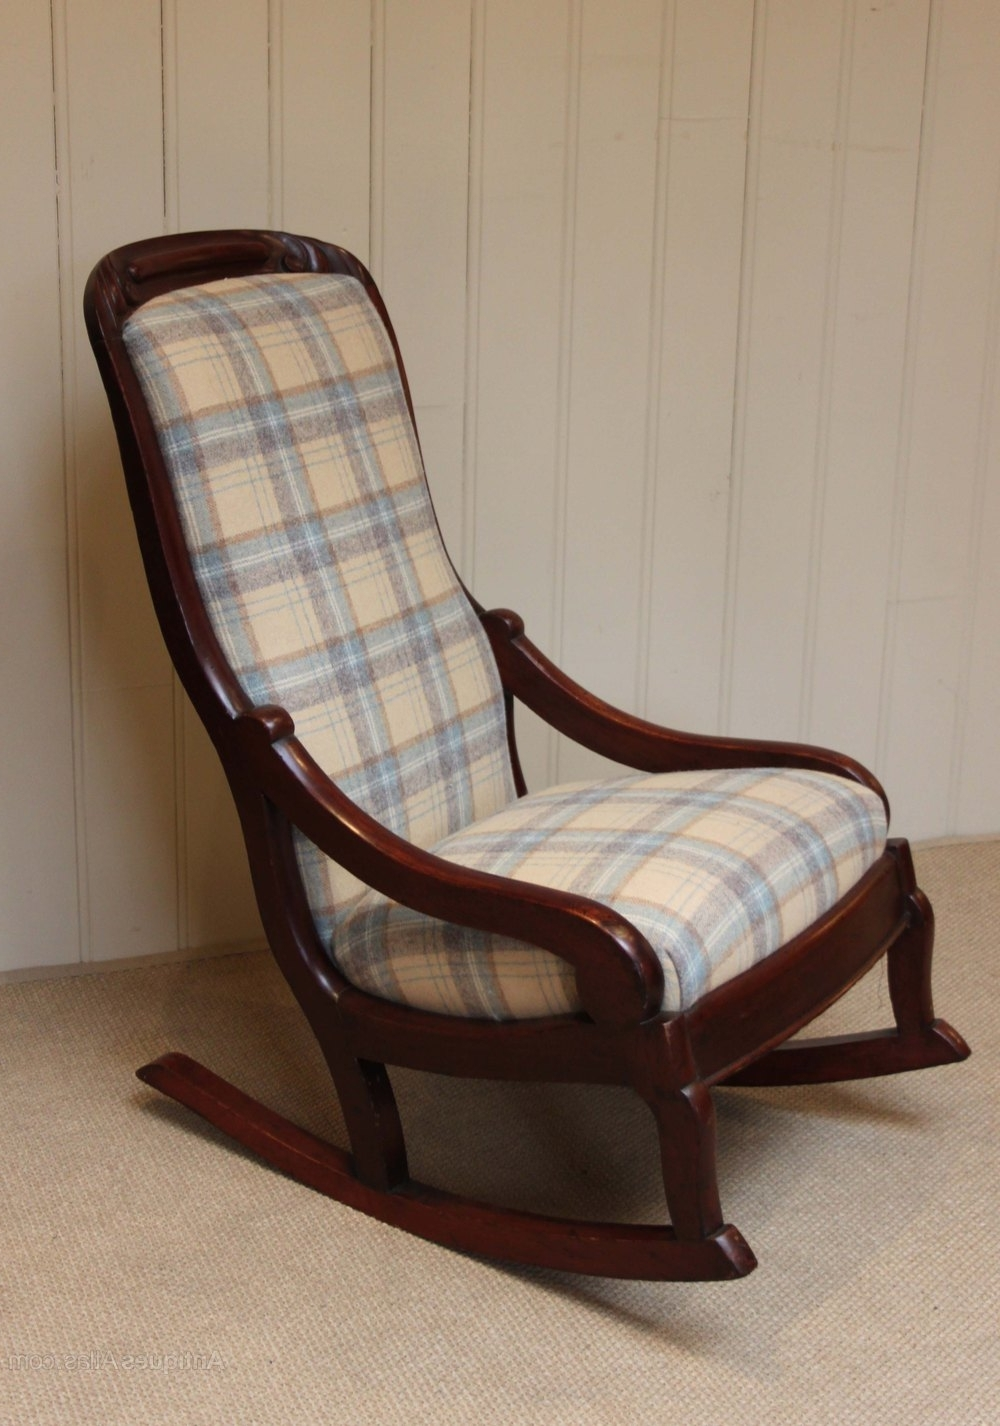 Late Victorian Upholstered Rocking Chair – Antiques Atlas Within Most Popular Upholstered Rocking Chairs (View 6 of 20)